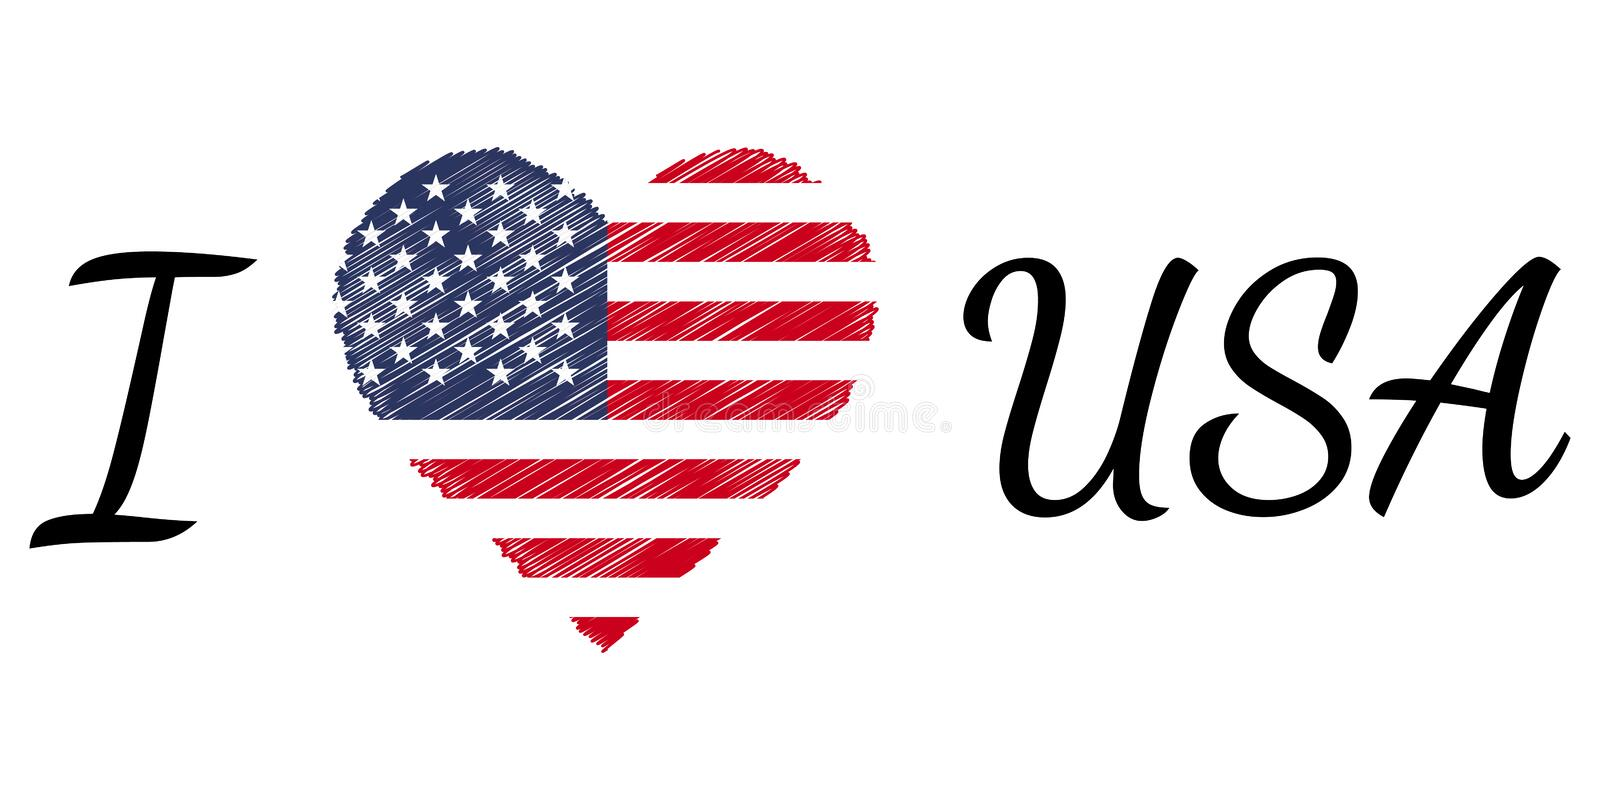 I love country usa america, text heart Doodle, vector calligraphic text, I love usa america flag heart patriot stock illustration